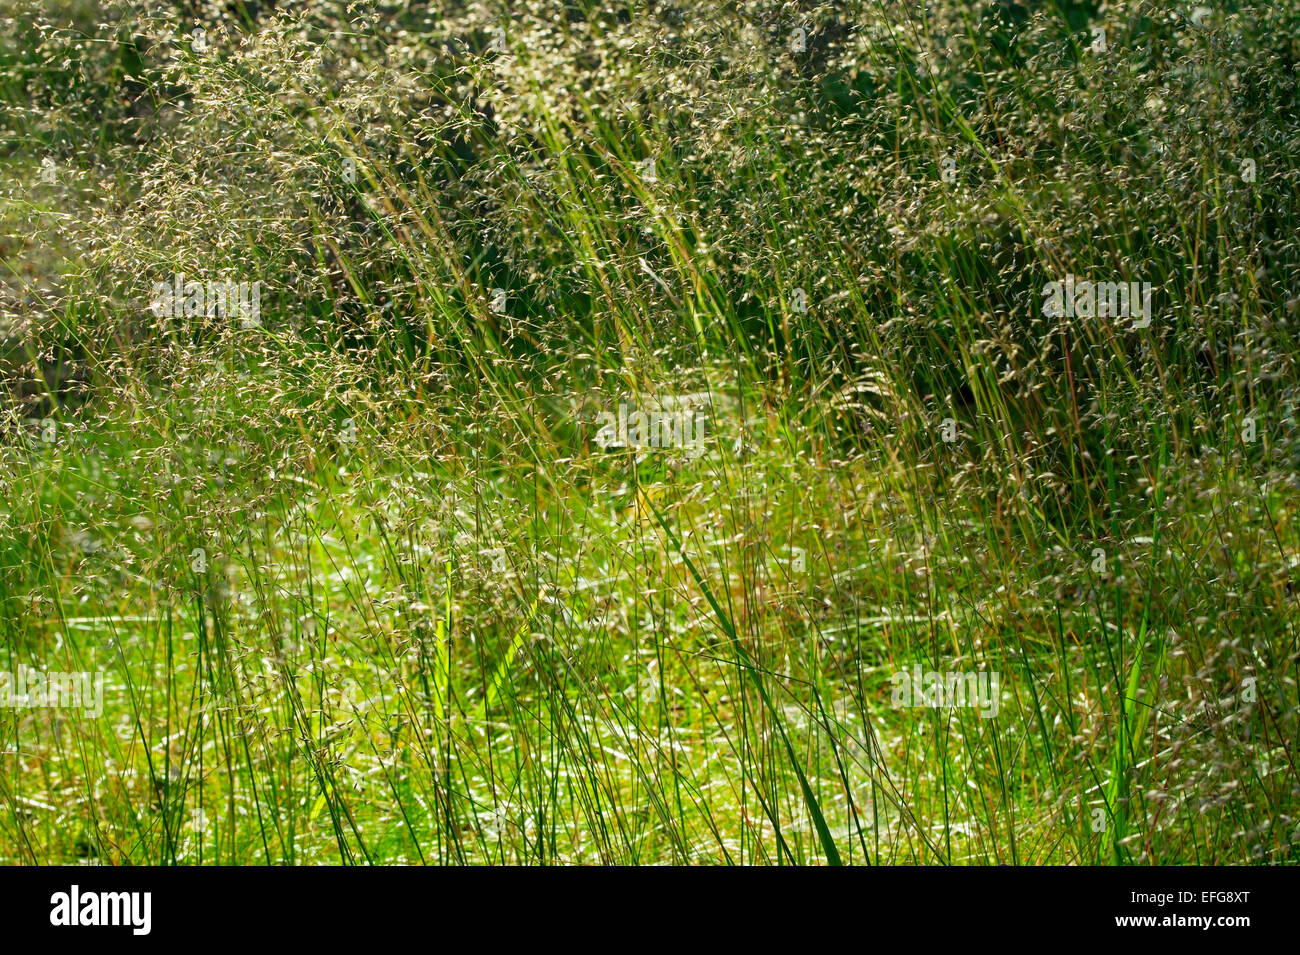 Forest undergrowth. Grass growing on forest floor. Pomerania, northern Poland. Stock Photo